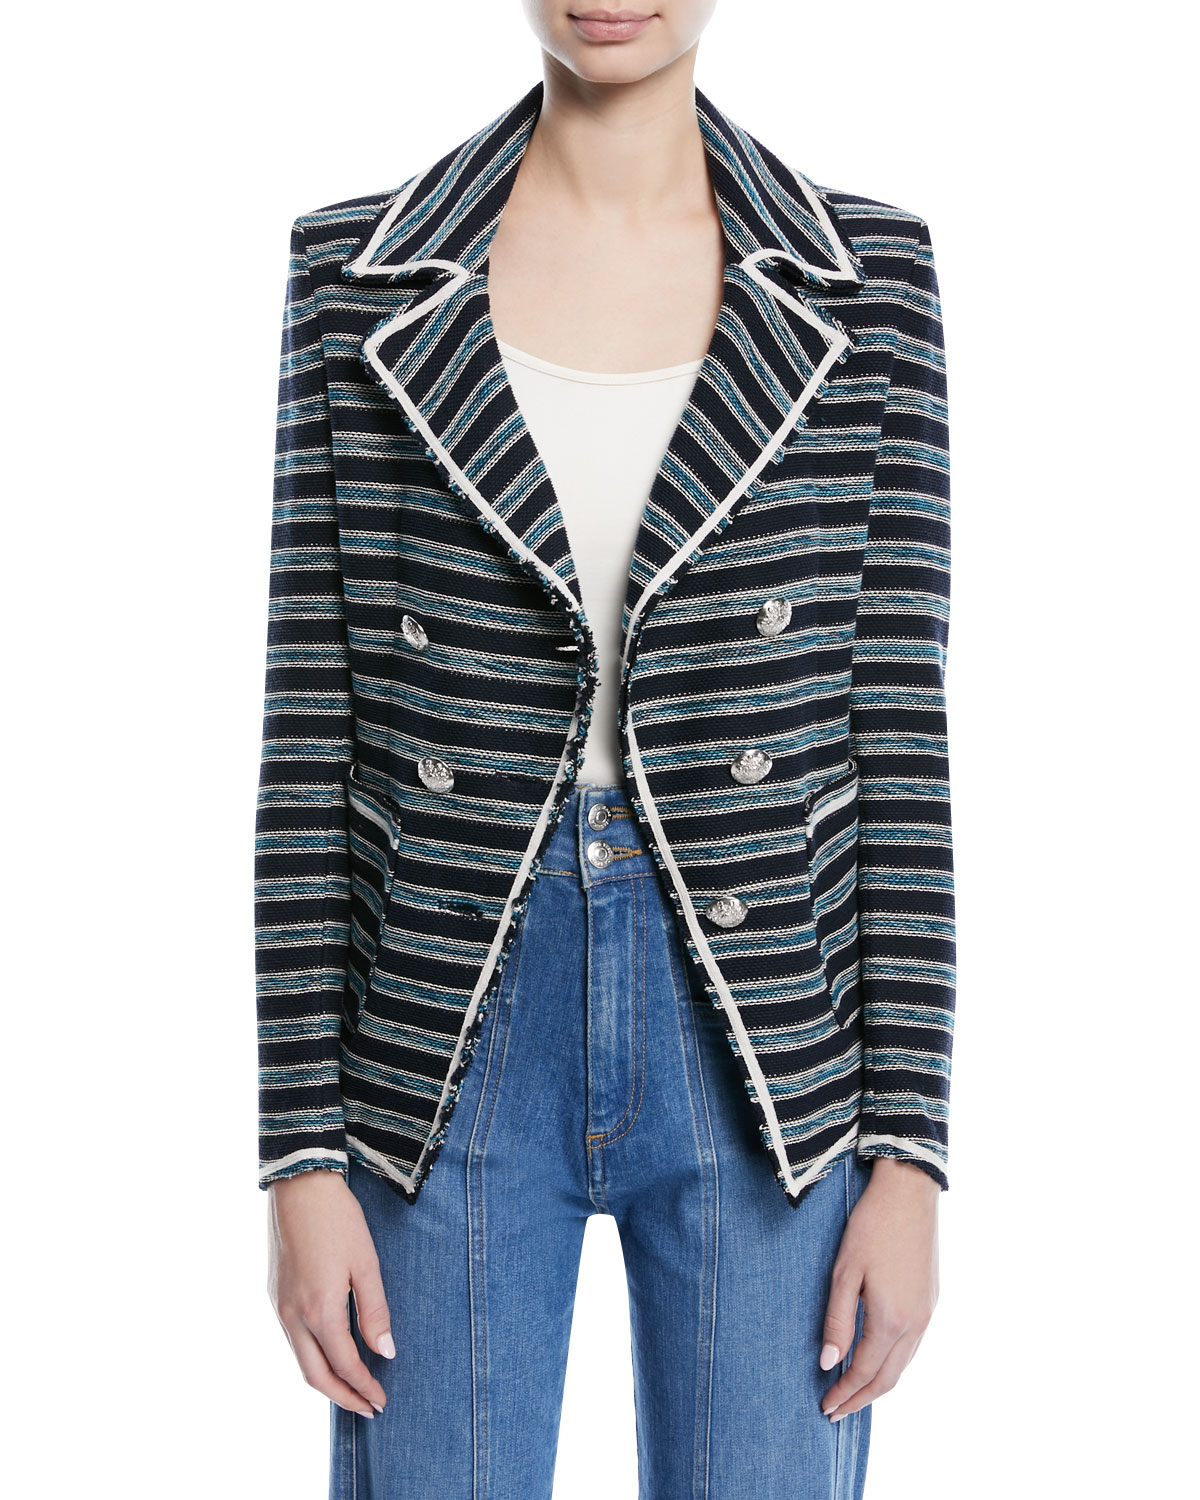 Veronica BeardCarroll Portrait-Neck Striped Tweed Double-Breasted Jacket 1cc5644a7d1